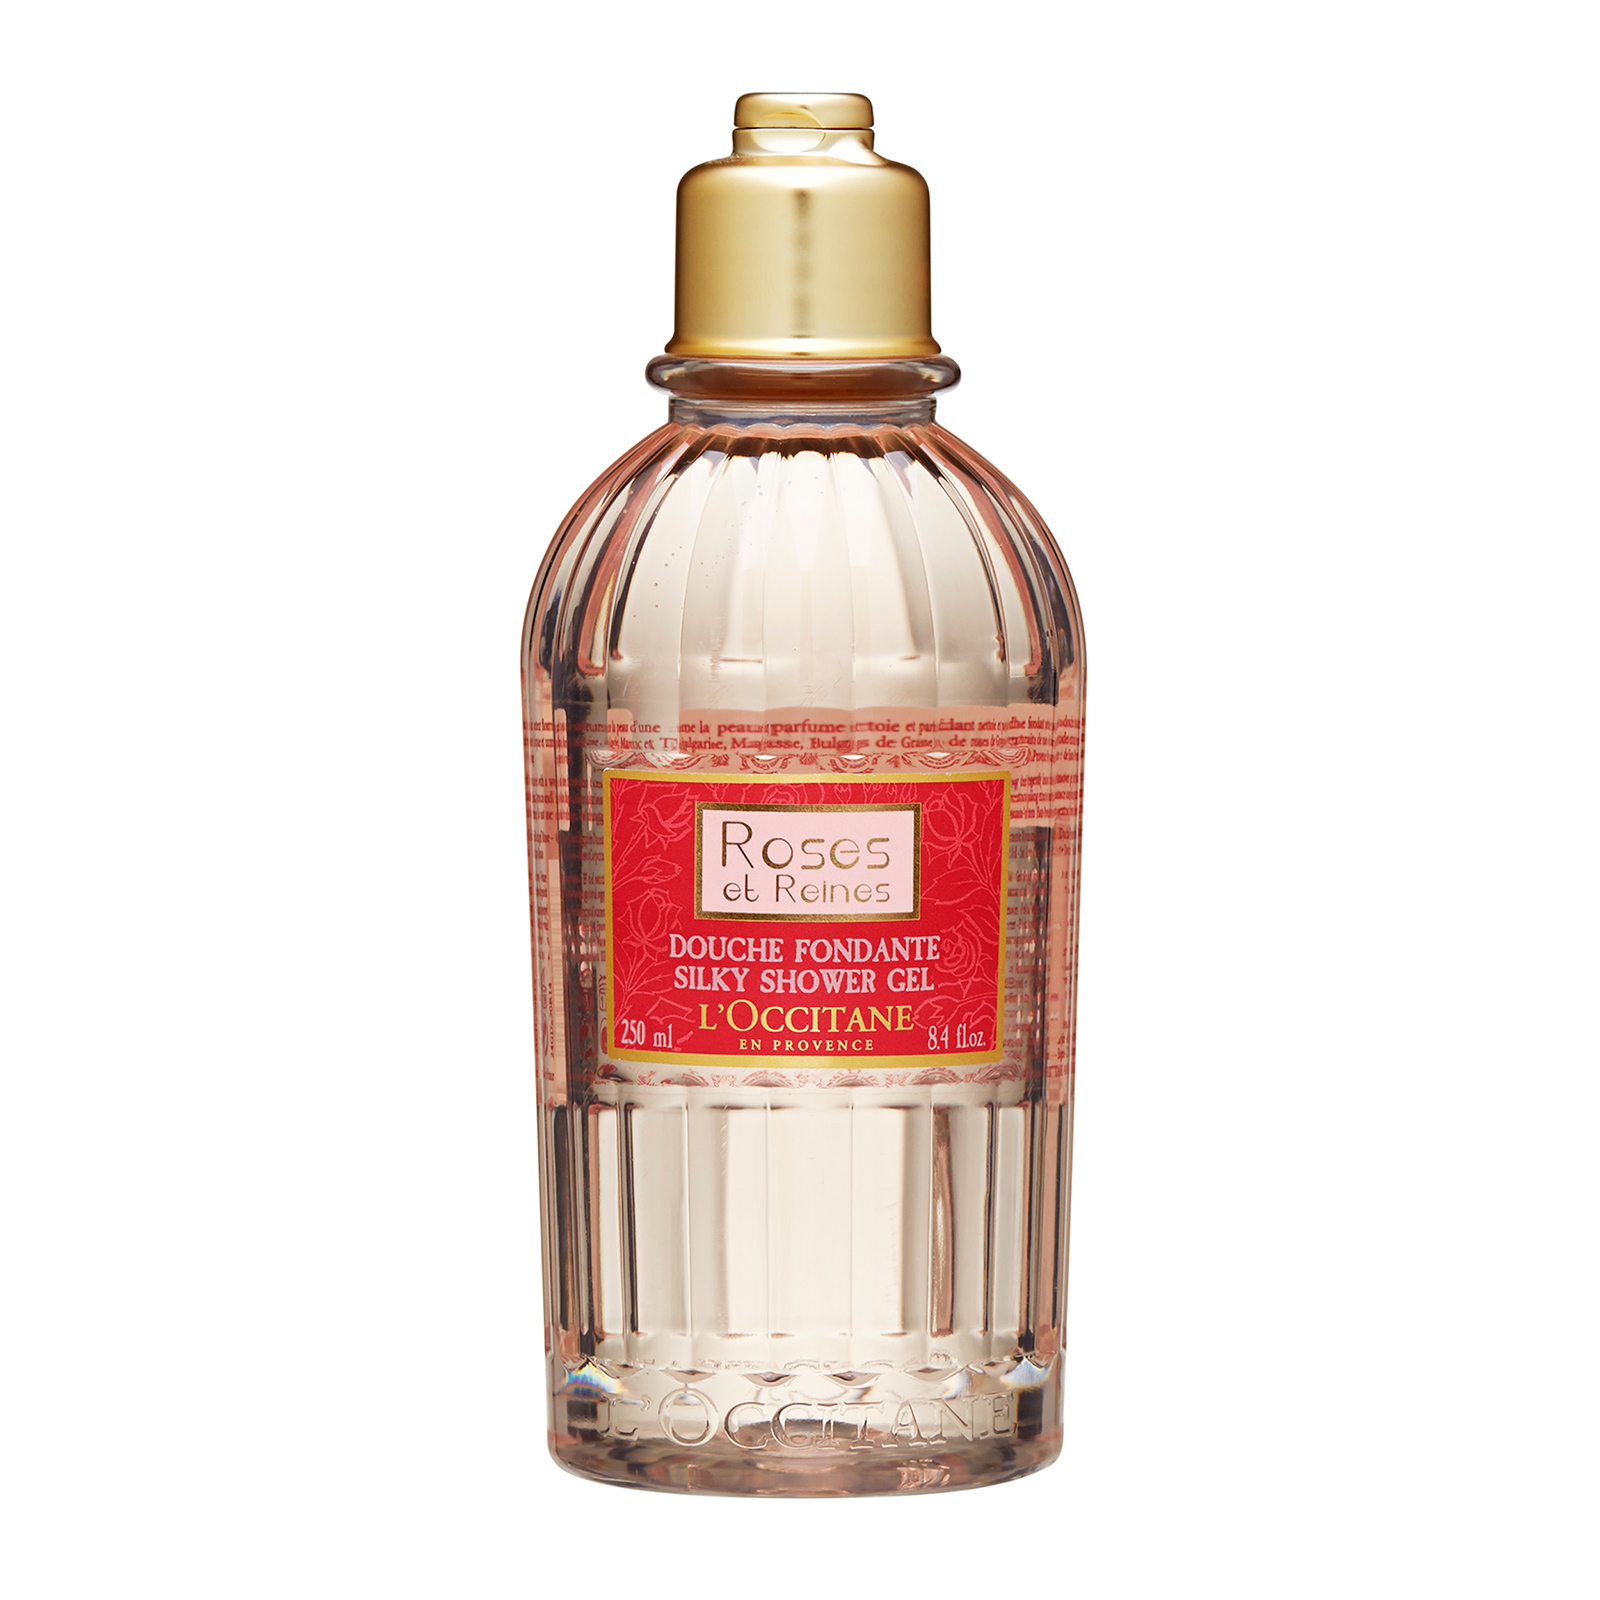 L'Occitane Roses et Reines Silky Shower Gel 8.4oz, 250ml